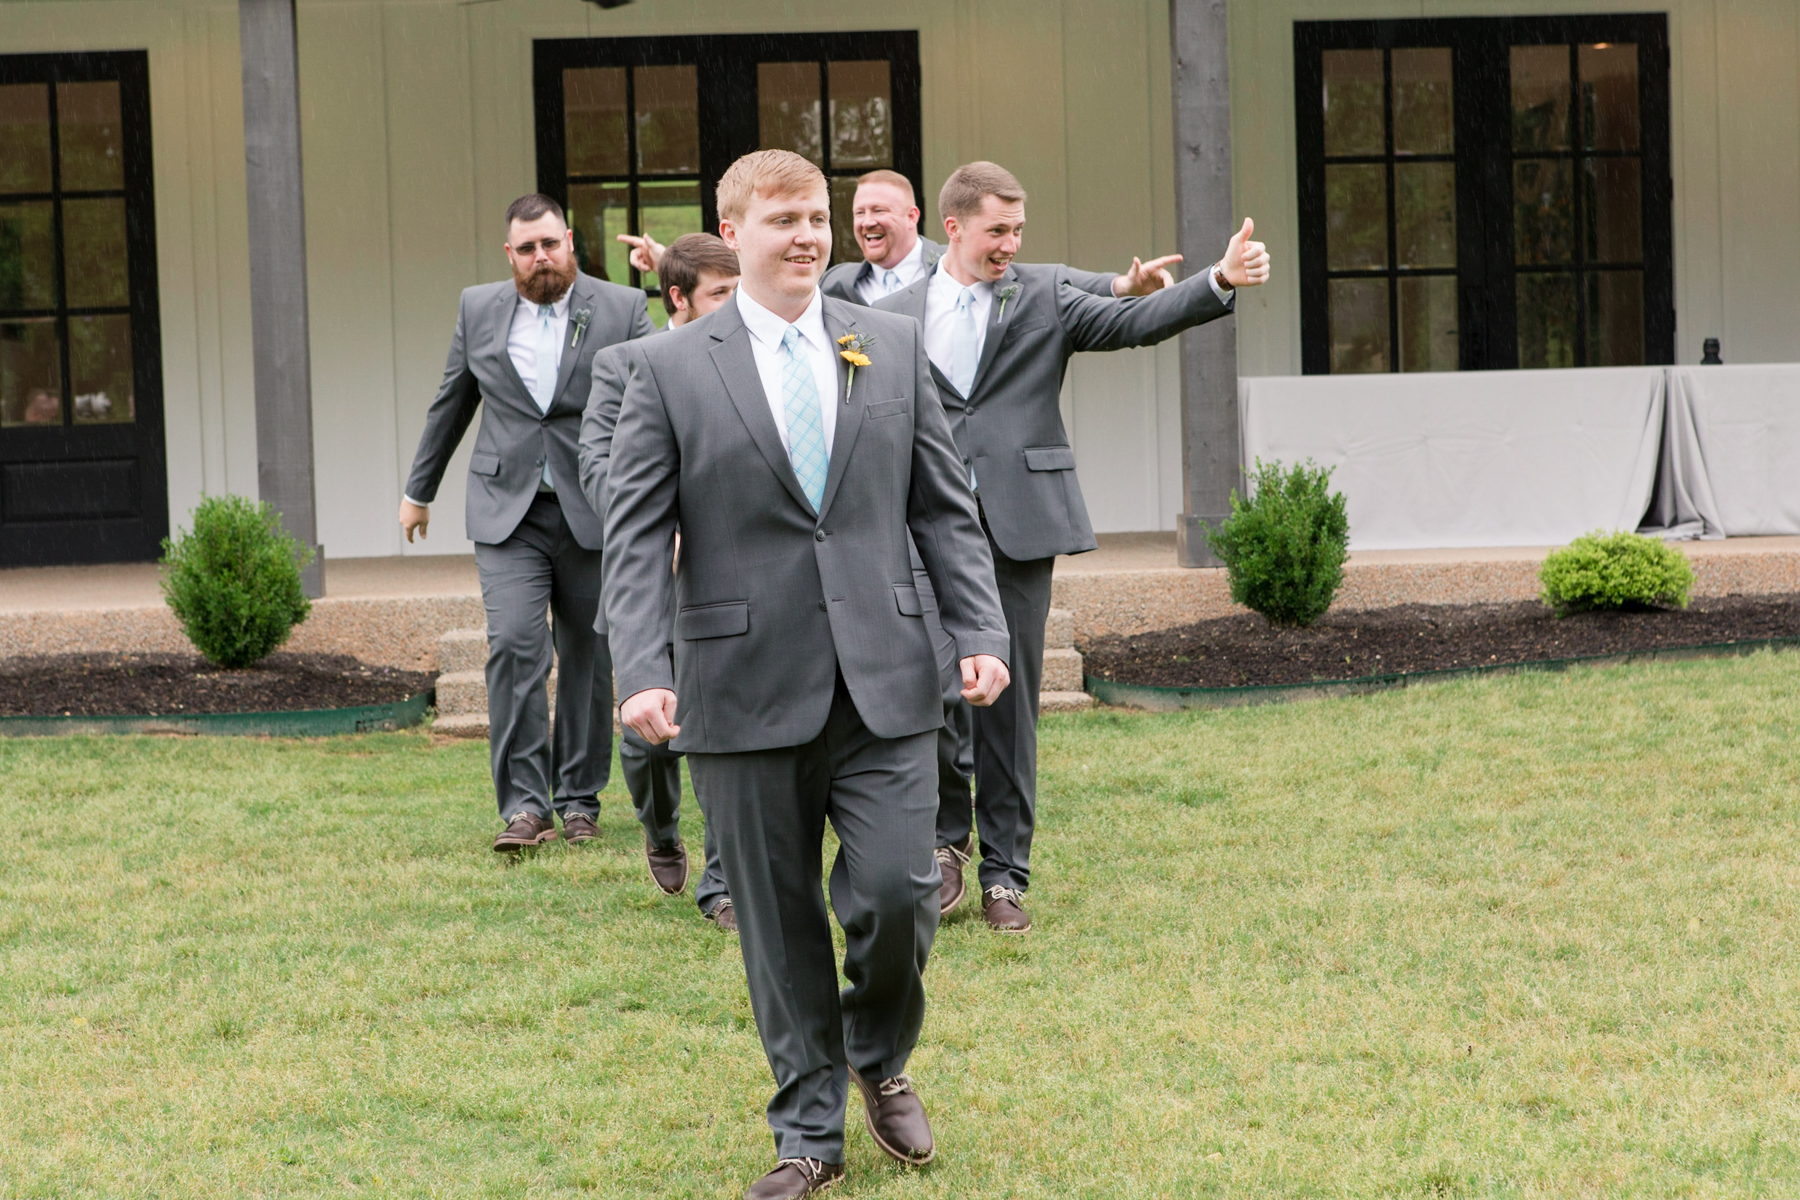 groom-and-his-groomsmen-wedding-day.jpg